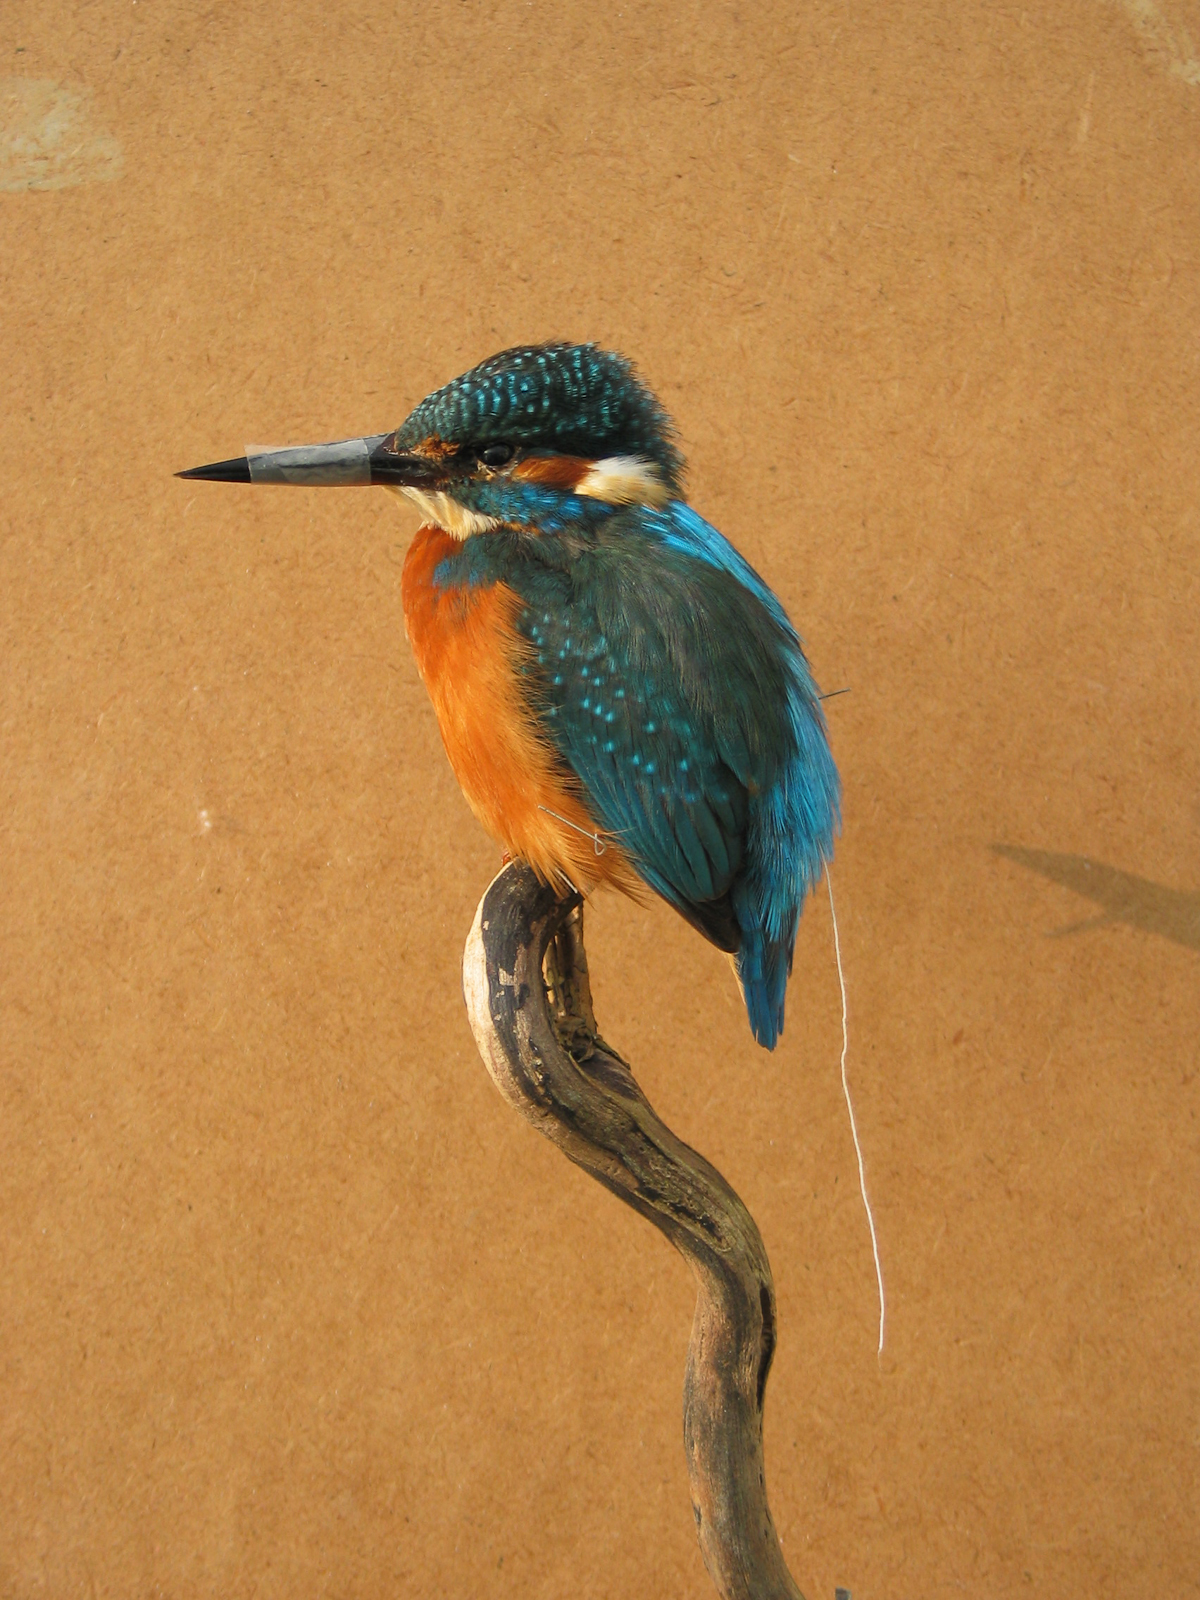 Exotic Birds For Sale >> Kingfisher | UK Bird Small Mammal Taxidermist Mike Gadd